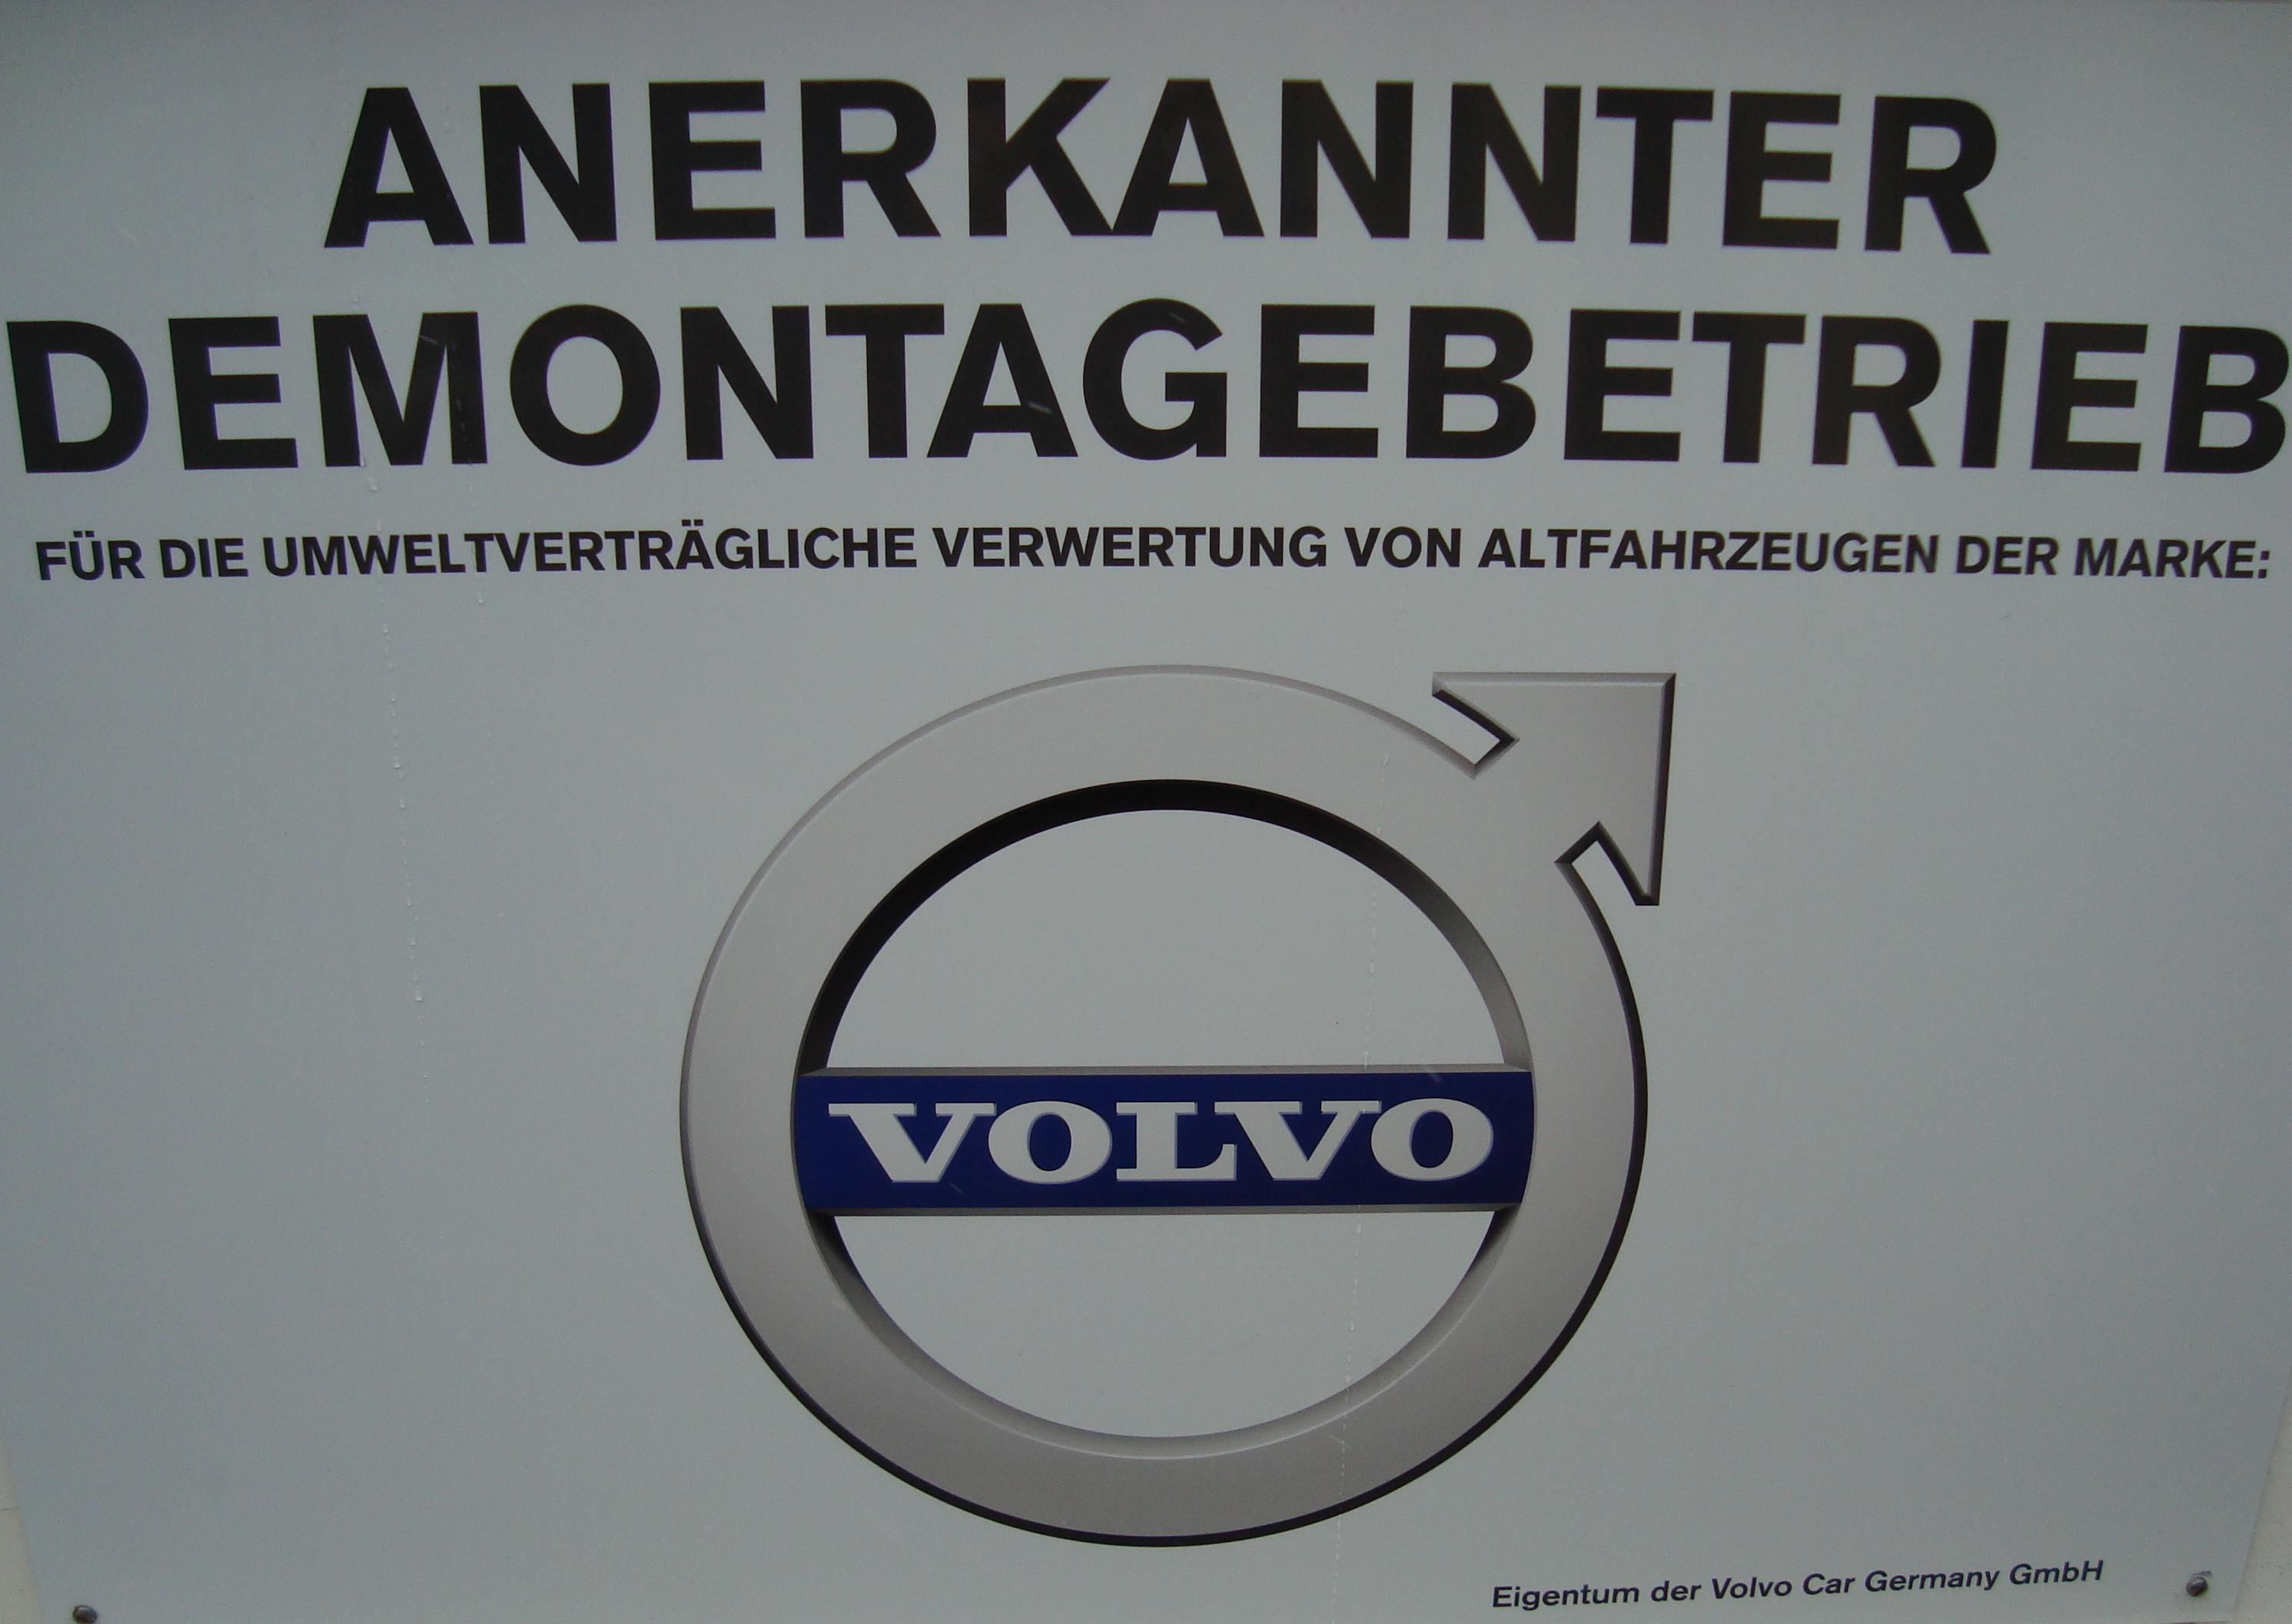 Volvo Kooperationspartner der Autoverwertung Quast